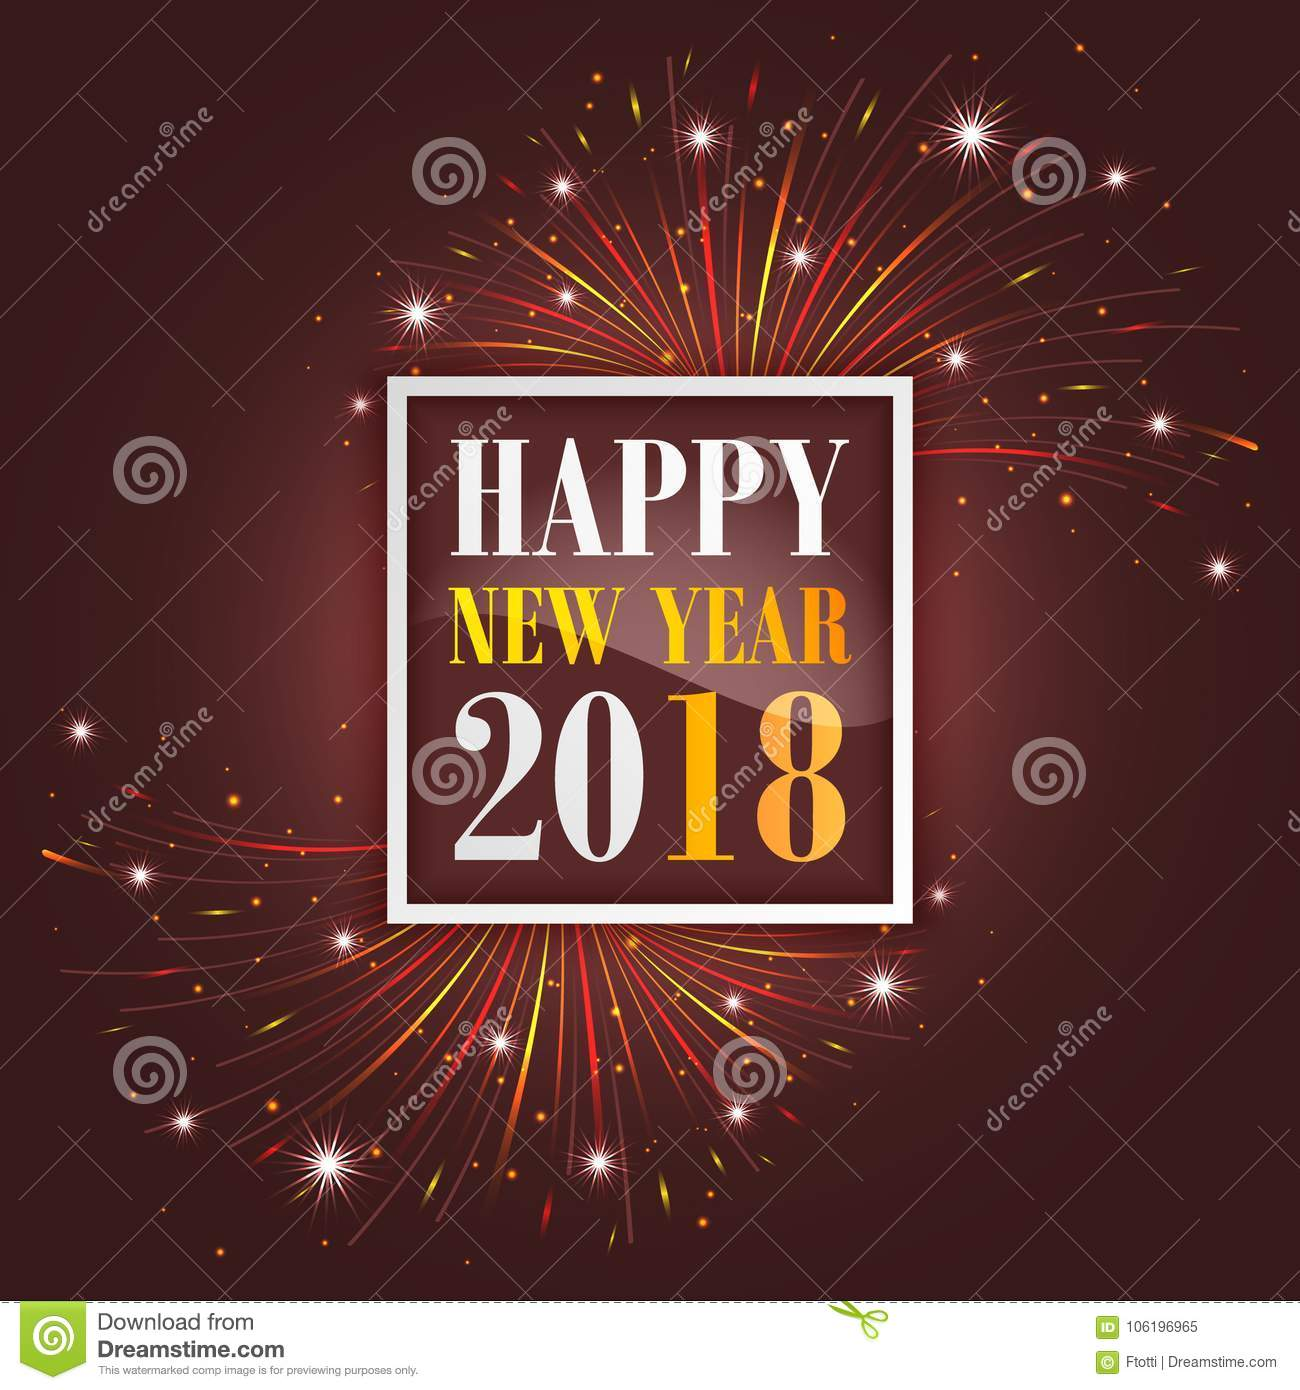 New Year Greetings 2018 With Fireworks Sparkle Stars And Glitter